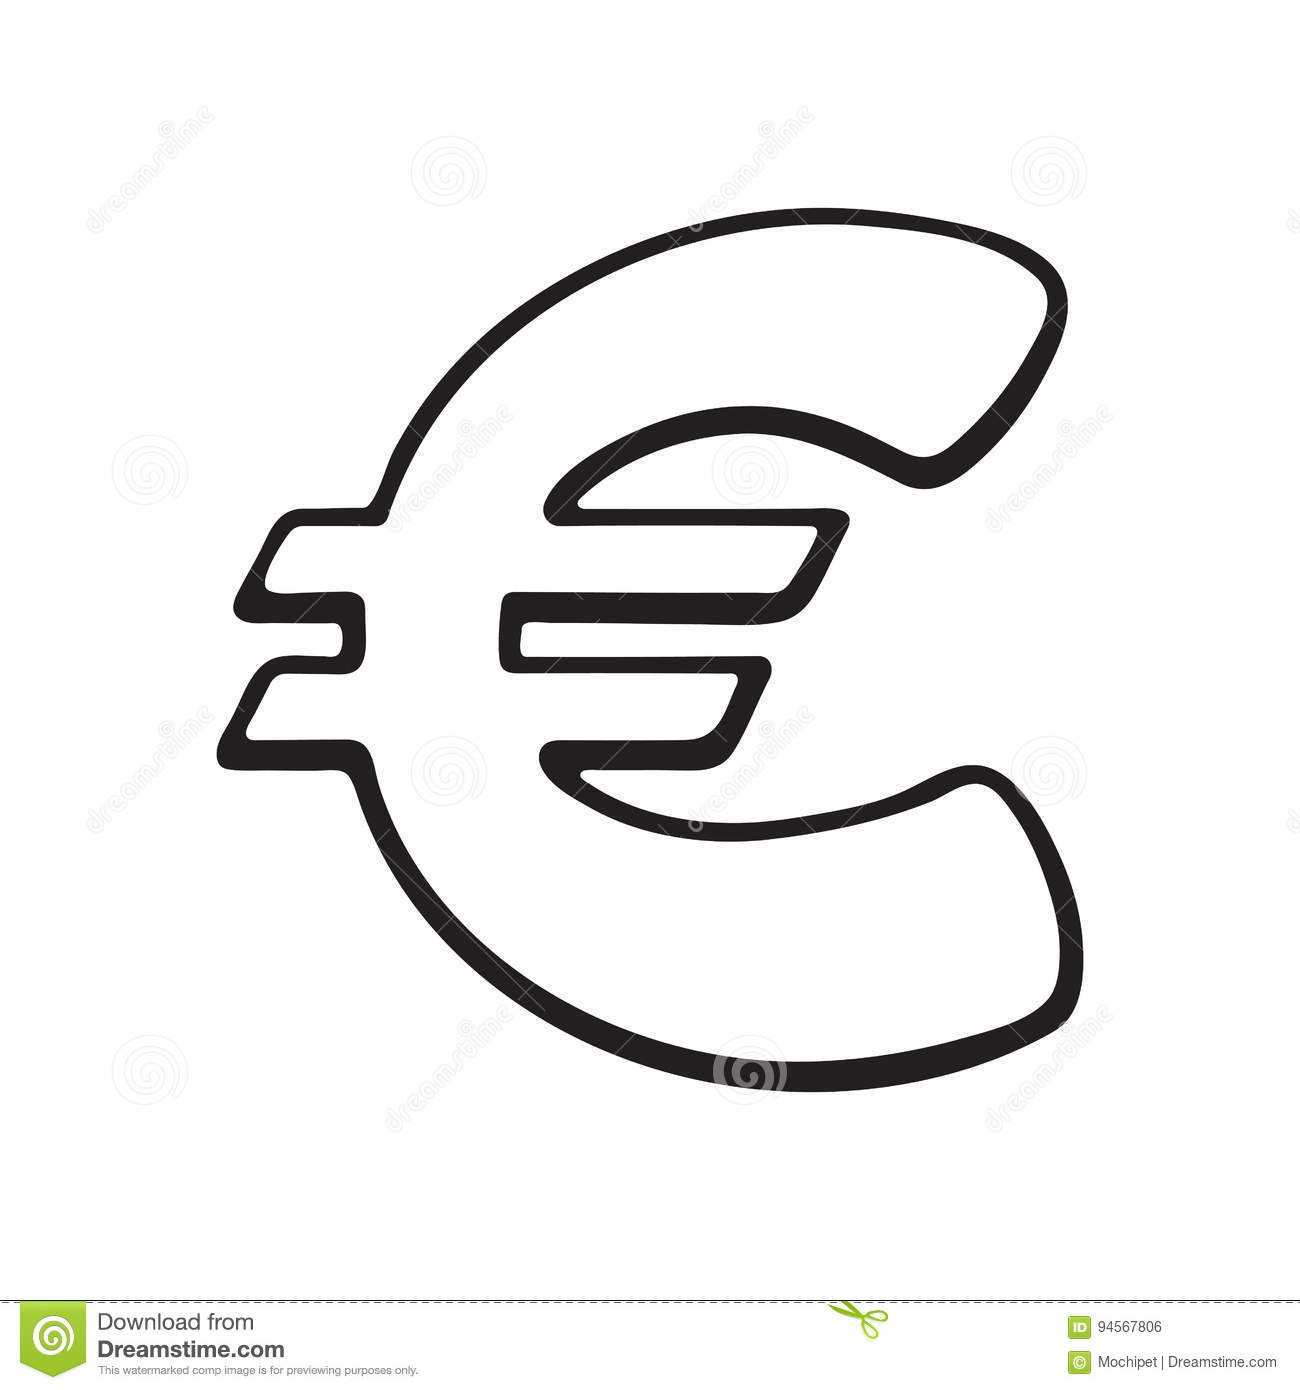 Doodle Of Euro Sign Stock Vector Illustration Of Cartoon 94567806